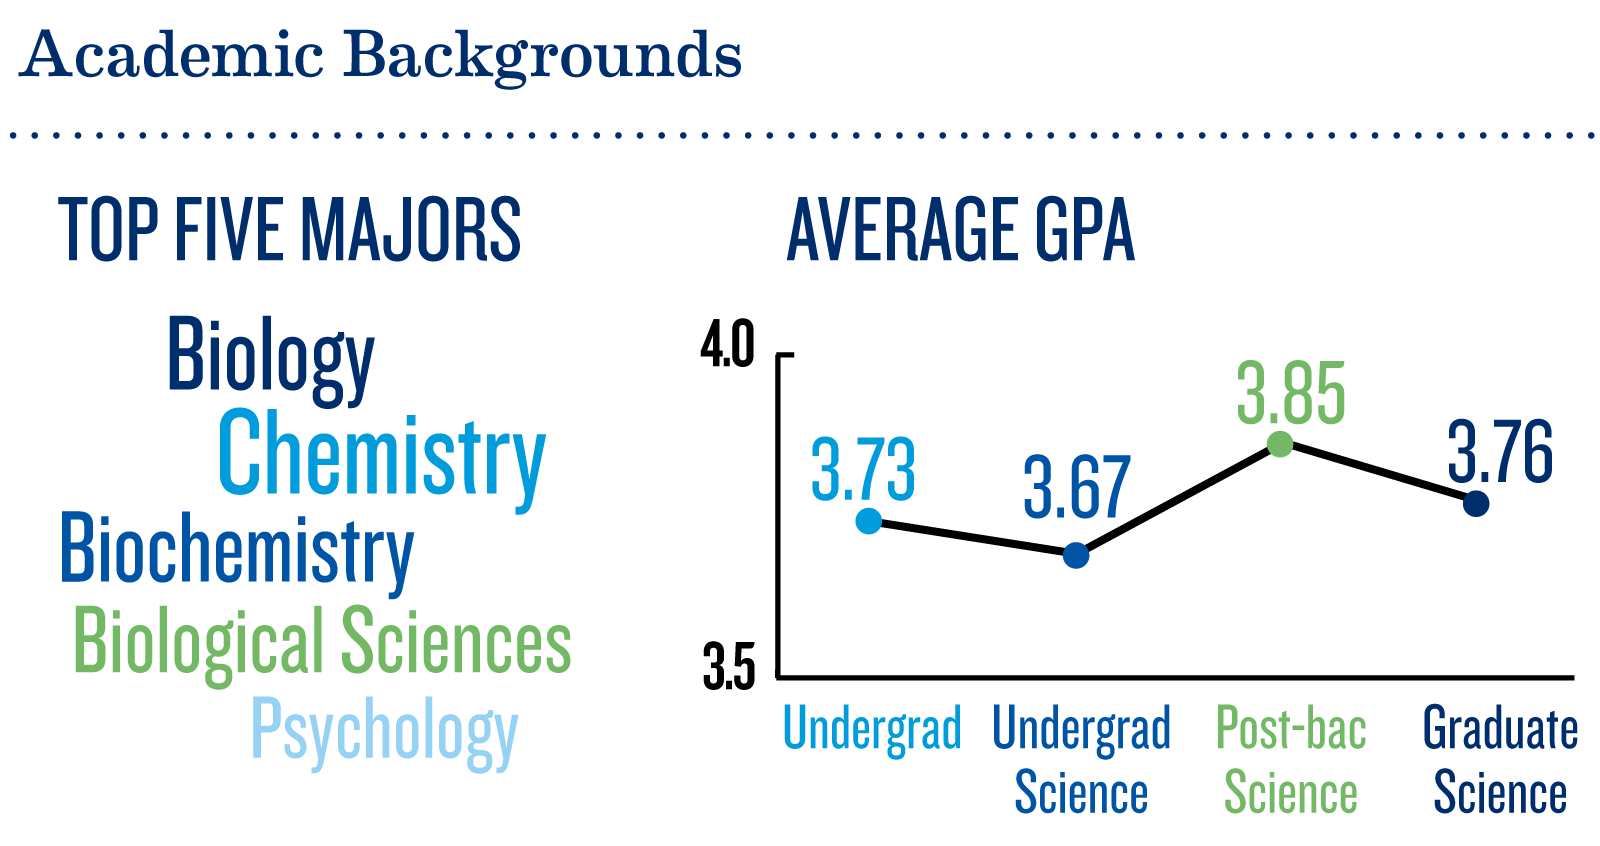 Top majors and average GPAs of medical students